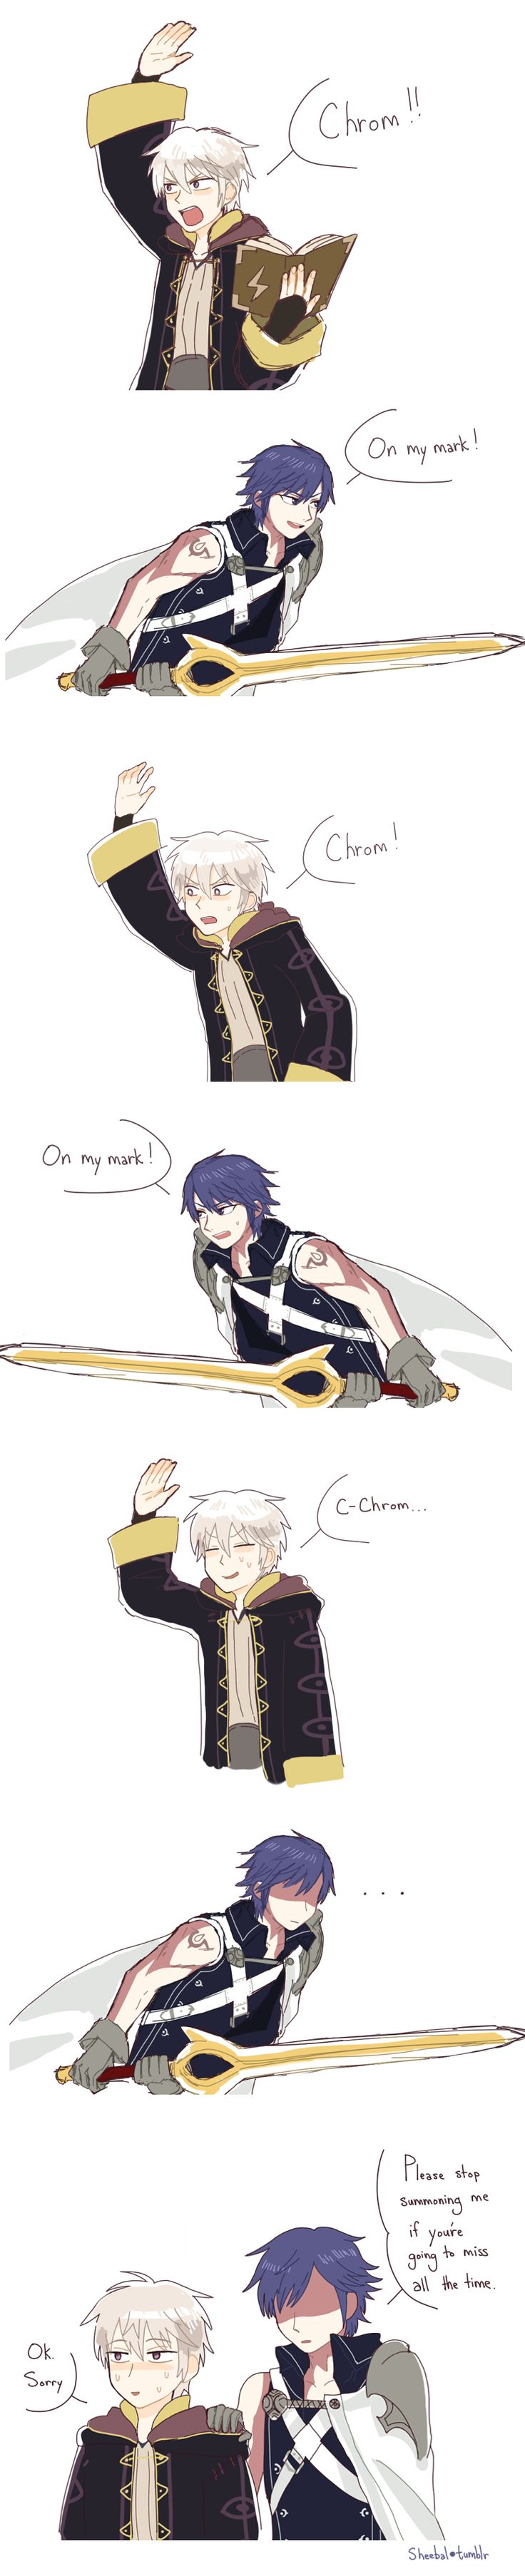 Robin's Final Smash by sheebal.deviantart.com on @DeviantArt But then I wouldn't be able to summon my husband as much if we kill them all! :P